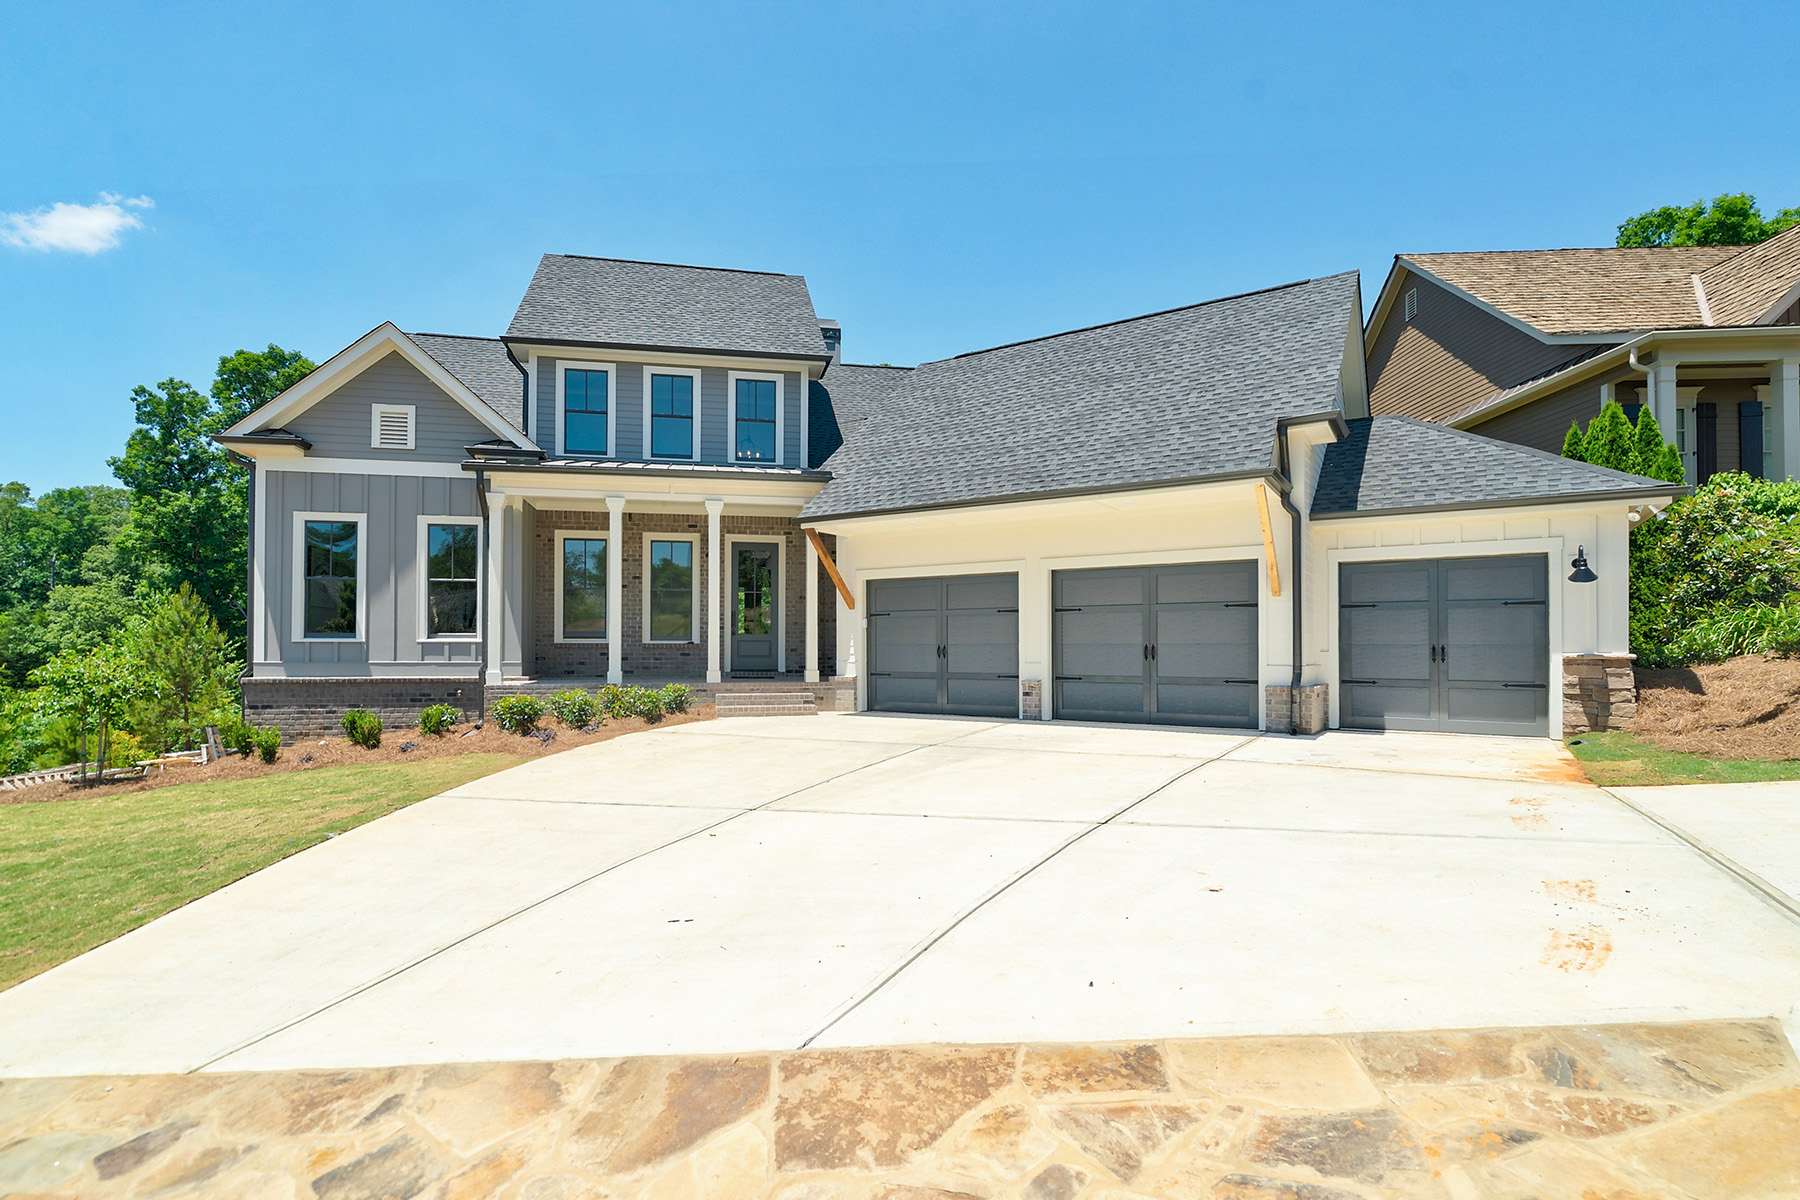 Single Family Homes for Active at Modern Farmhouse On The Golf Course In Chestatee 142 Blue Heron Bluff Dawsonville, Georgia 30534 United States